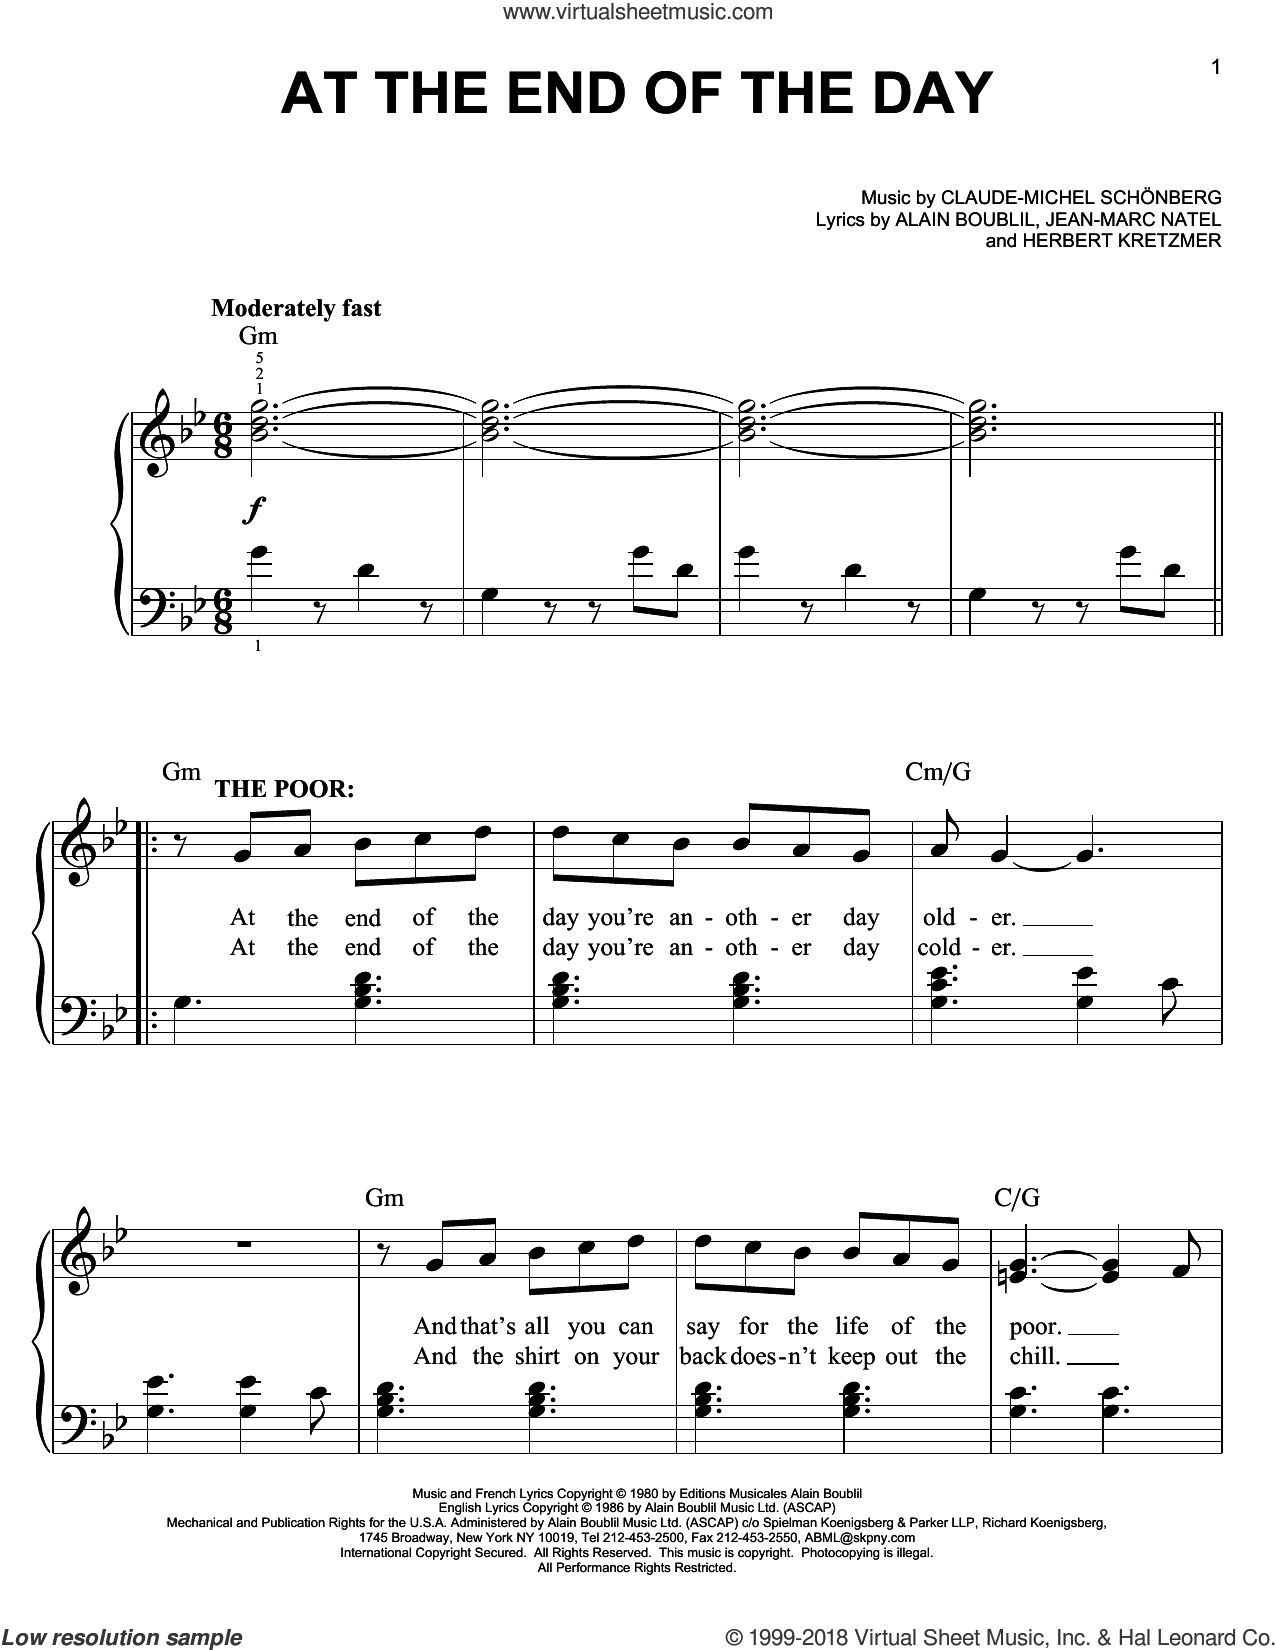 At The End Of The Day sheet music for piano solo by Claude-Michel Schonberg, Alain Boublil and Herbert Kretzmer, easy piano. Score Image Preview.